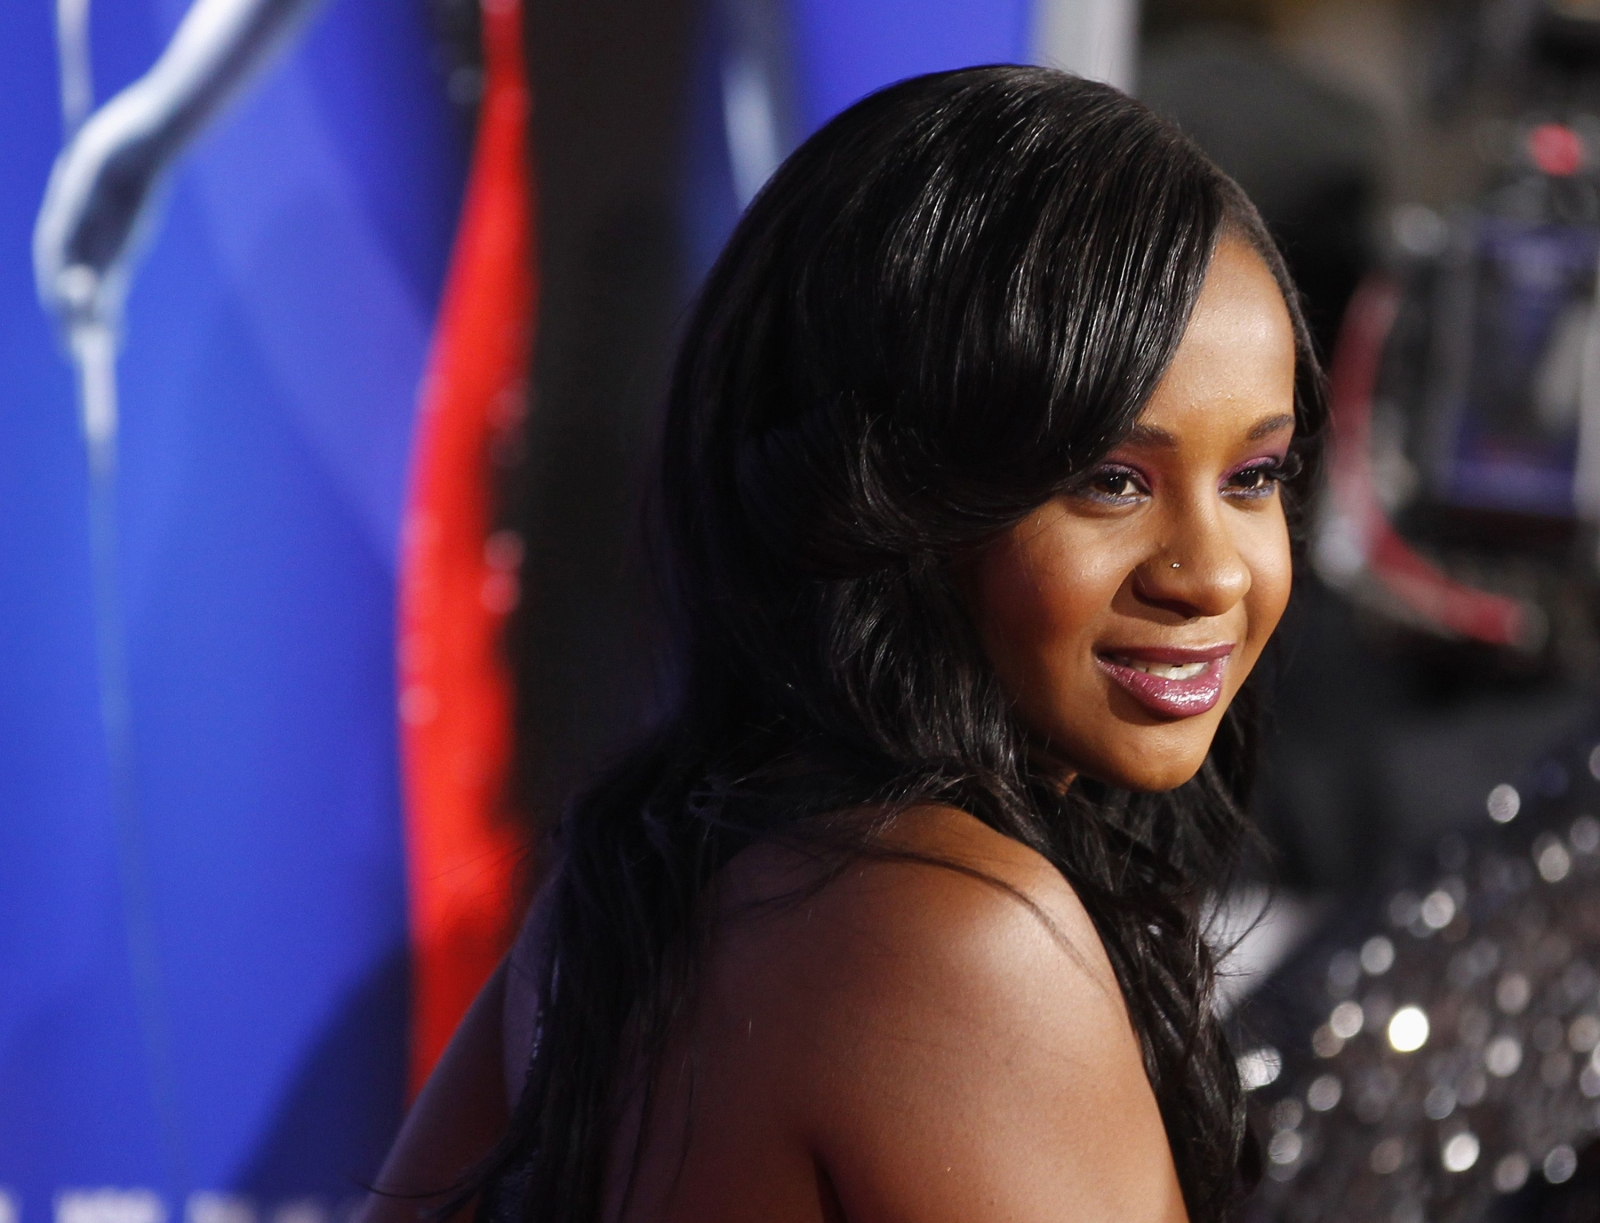 Police treat Bobbi Kristina Brown case as criminal investigation